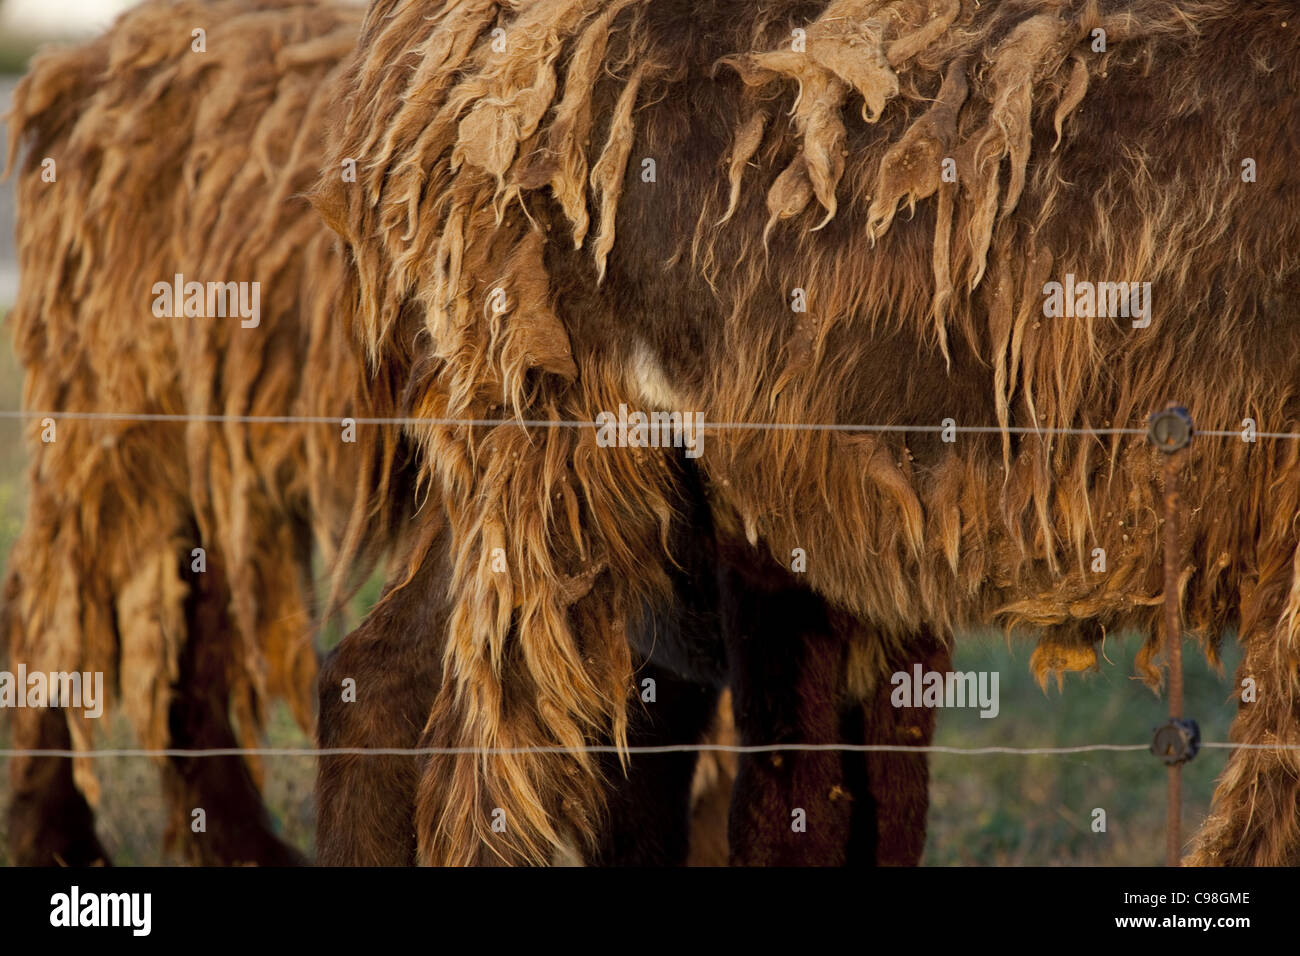 Close up image on the thick matted fur of a donkey on the île de Ré, France. - Stock Image